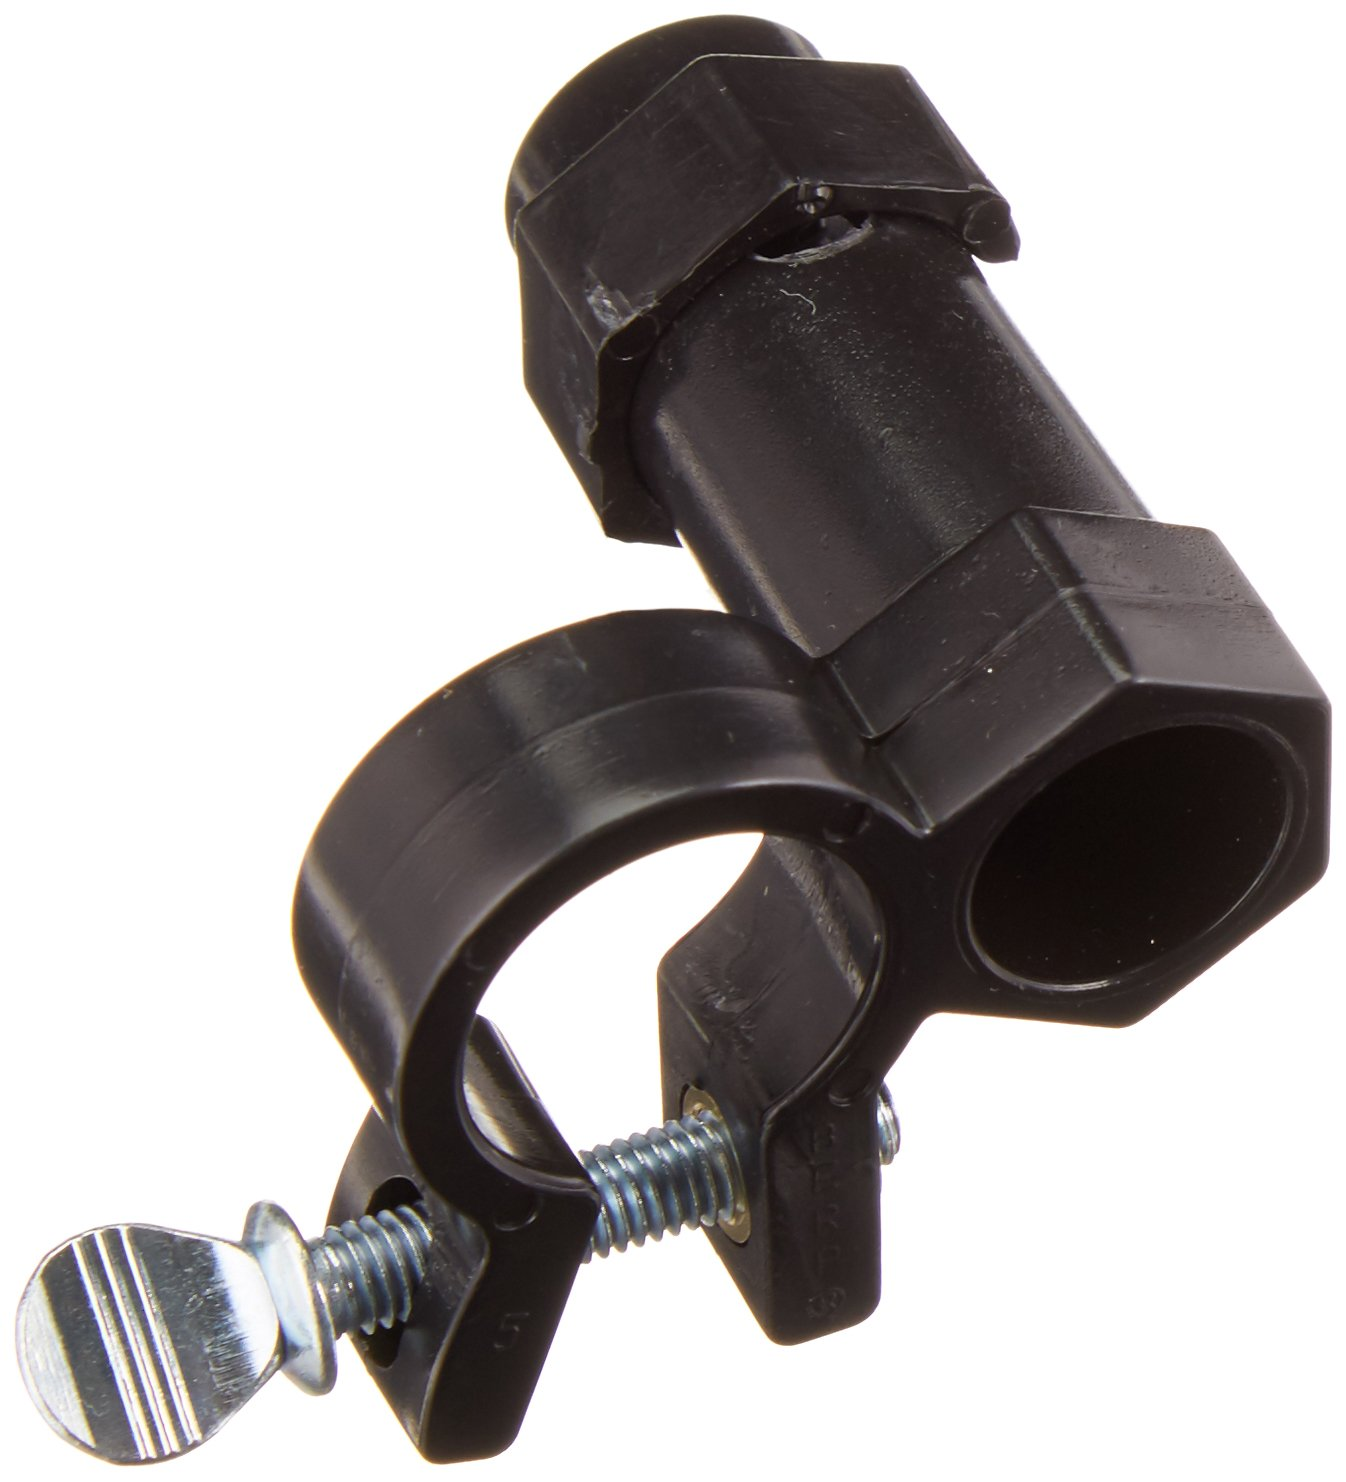 BERP Buzz Extension and Resistance Piece for Large Shank Trombone / Euphonium Trombone Large Shank